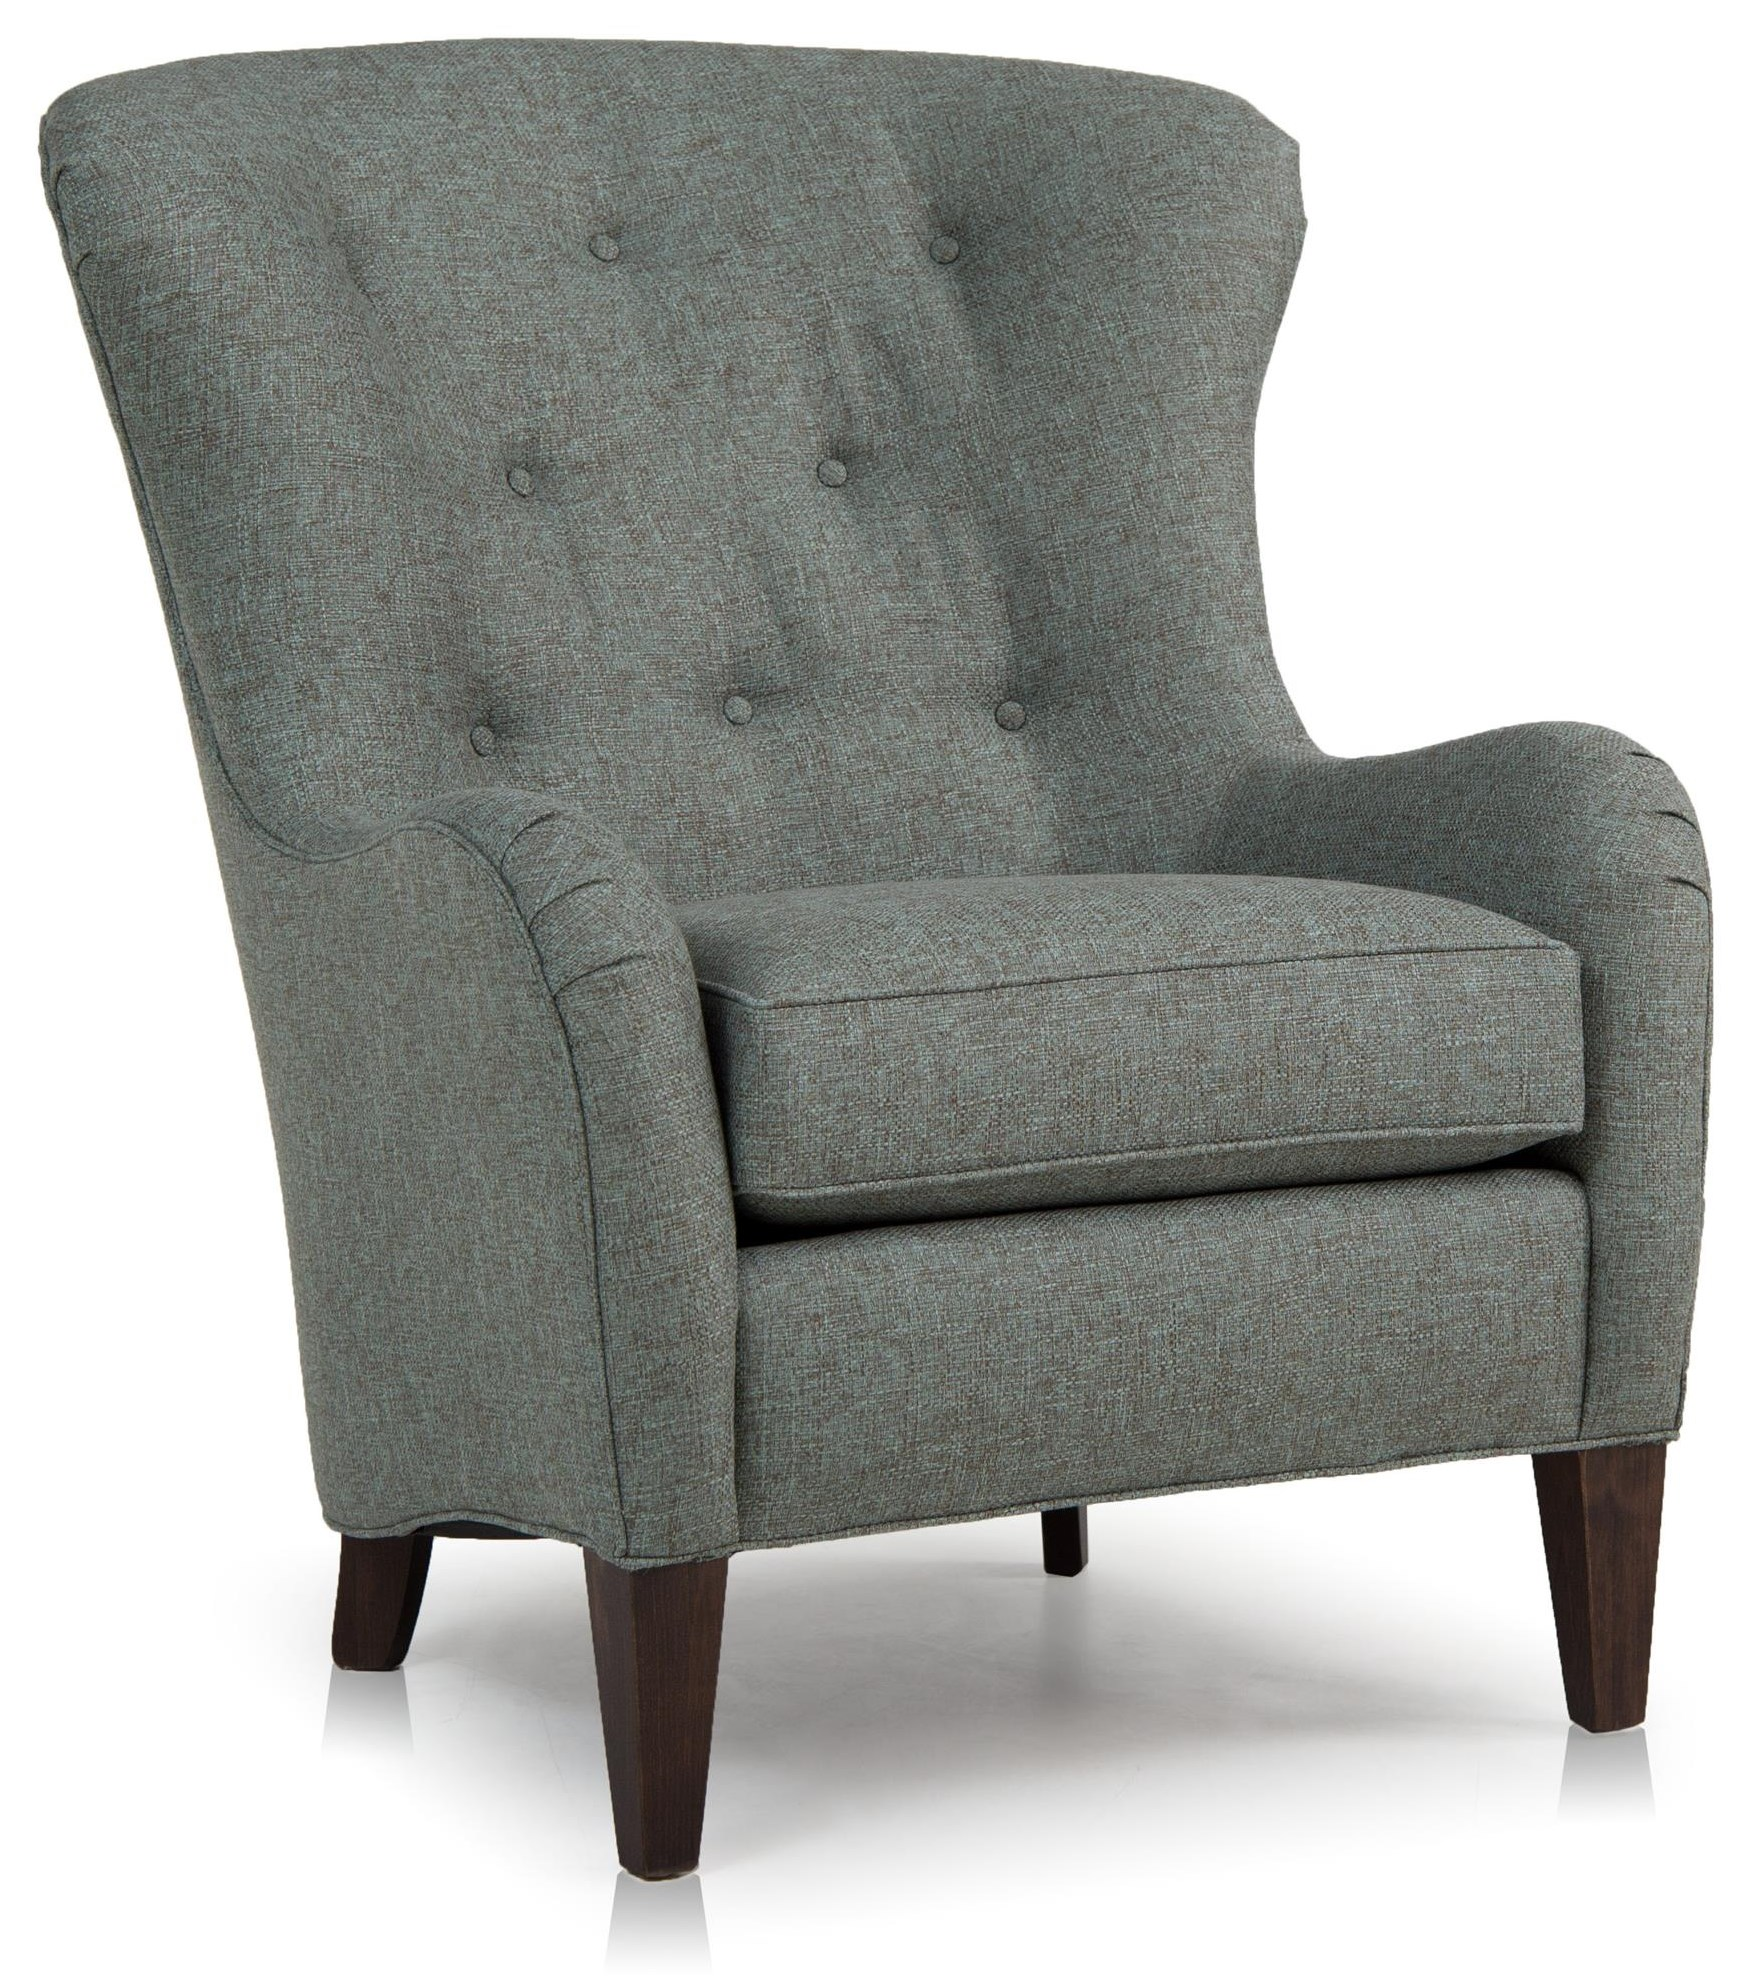 Bianco Wing Back Chair by Smith Brothers at Crowley Furniture & Mattress